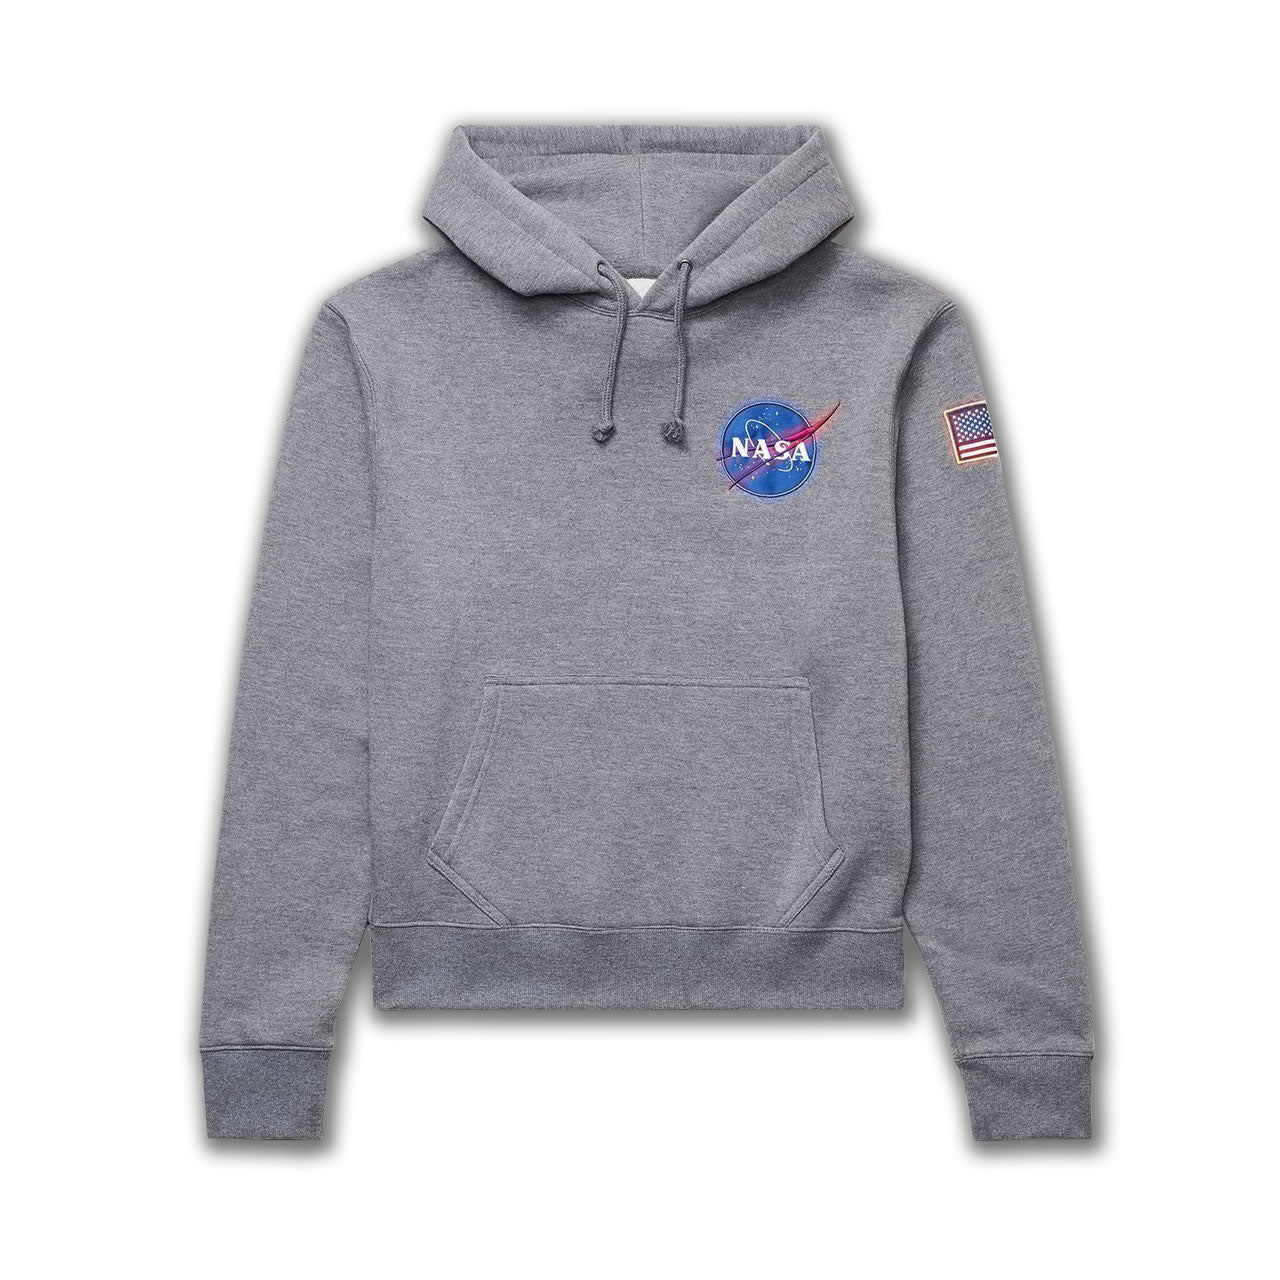 Alpha Industries x Nasa Hoodie